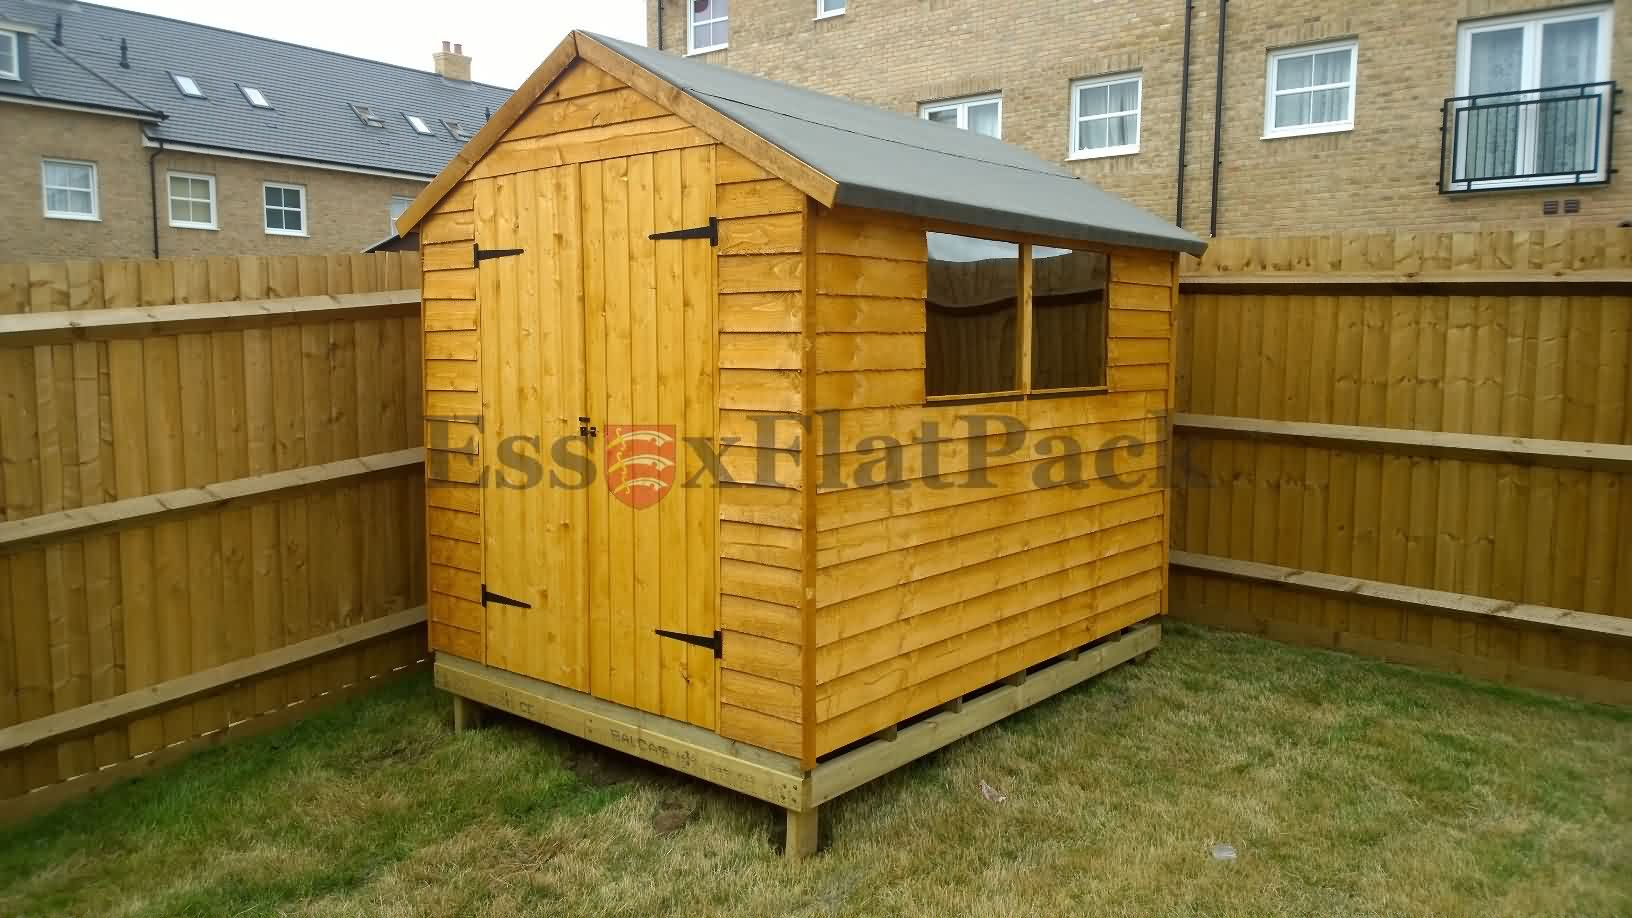 shed-installation-and-assembly-service-51.jpg